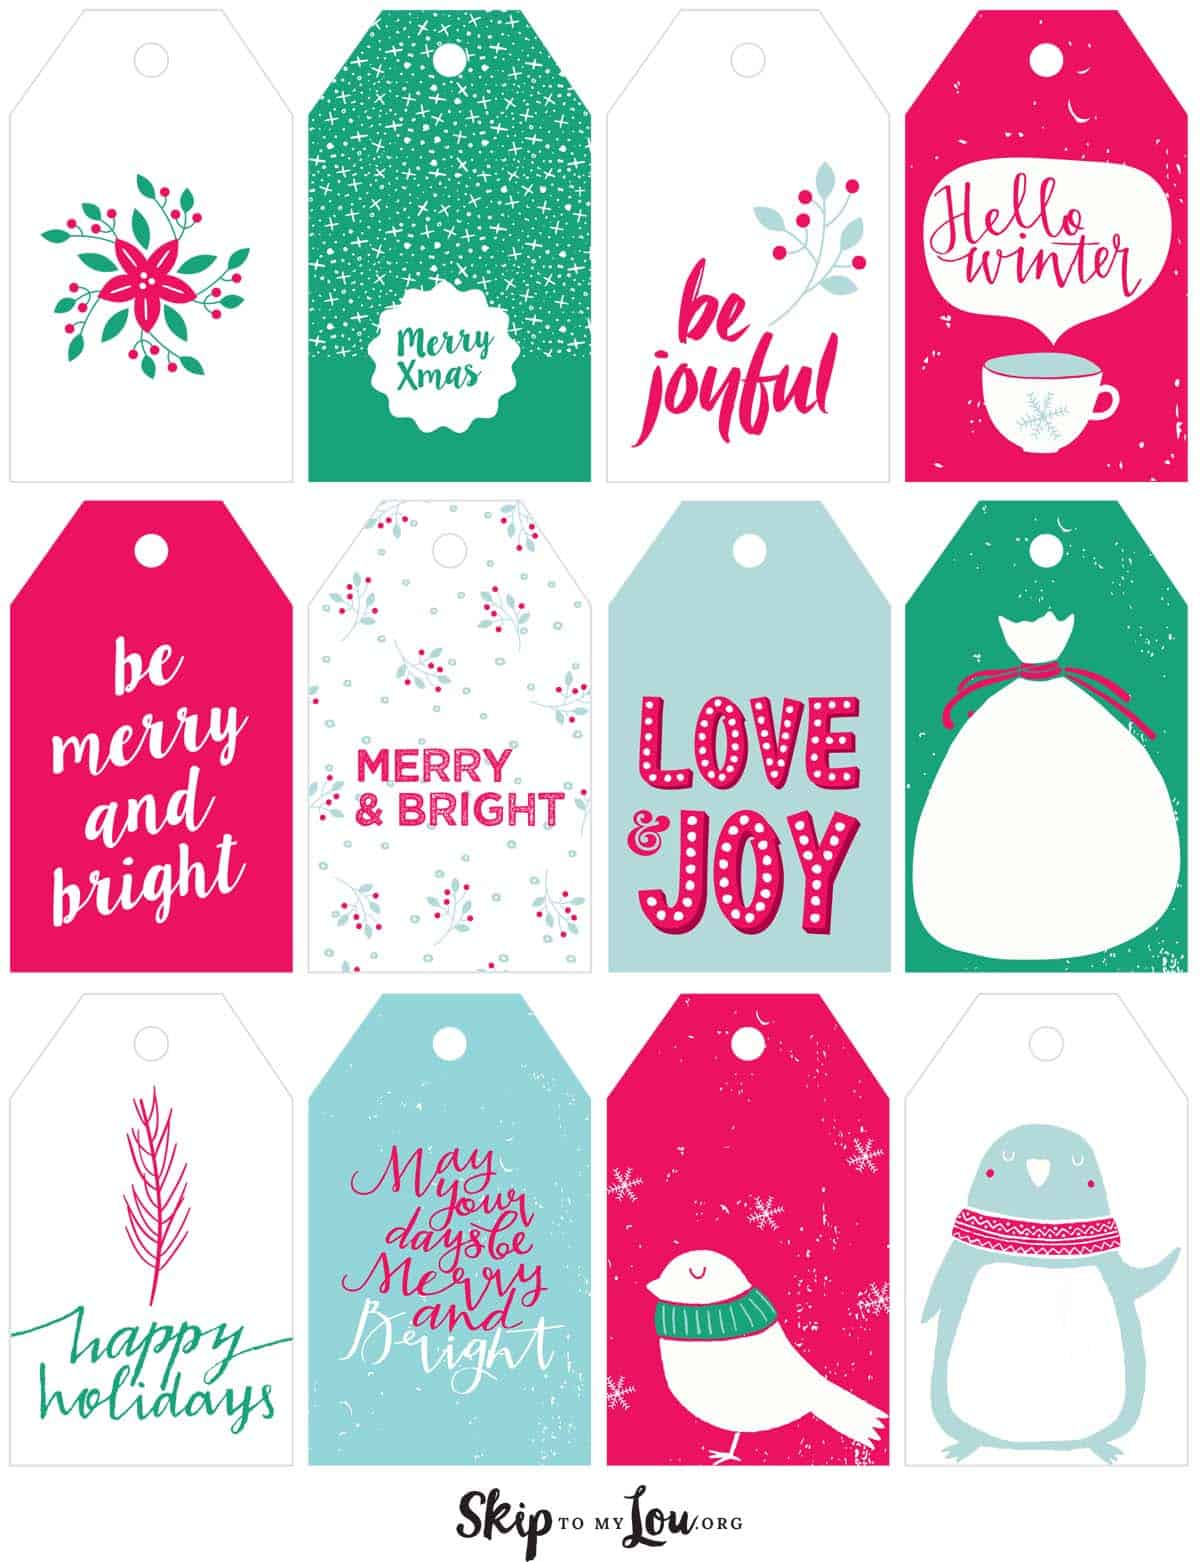 graphic about Christmas Tag Free Printable identify Printable Xmas Present Tags Miss In the direction of My Lou